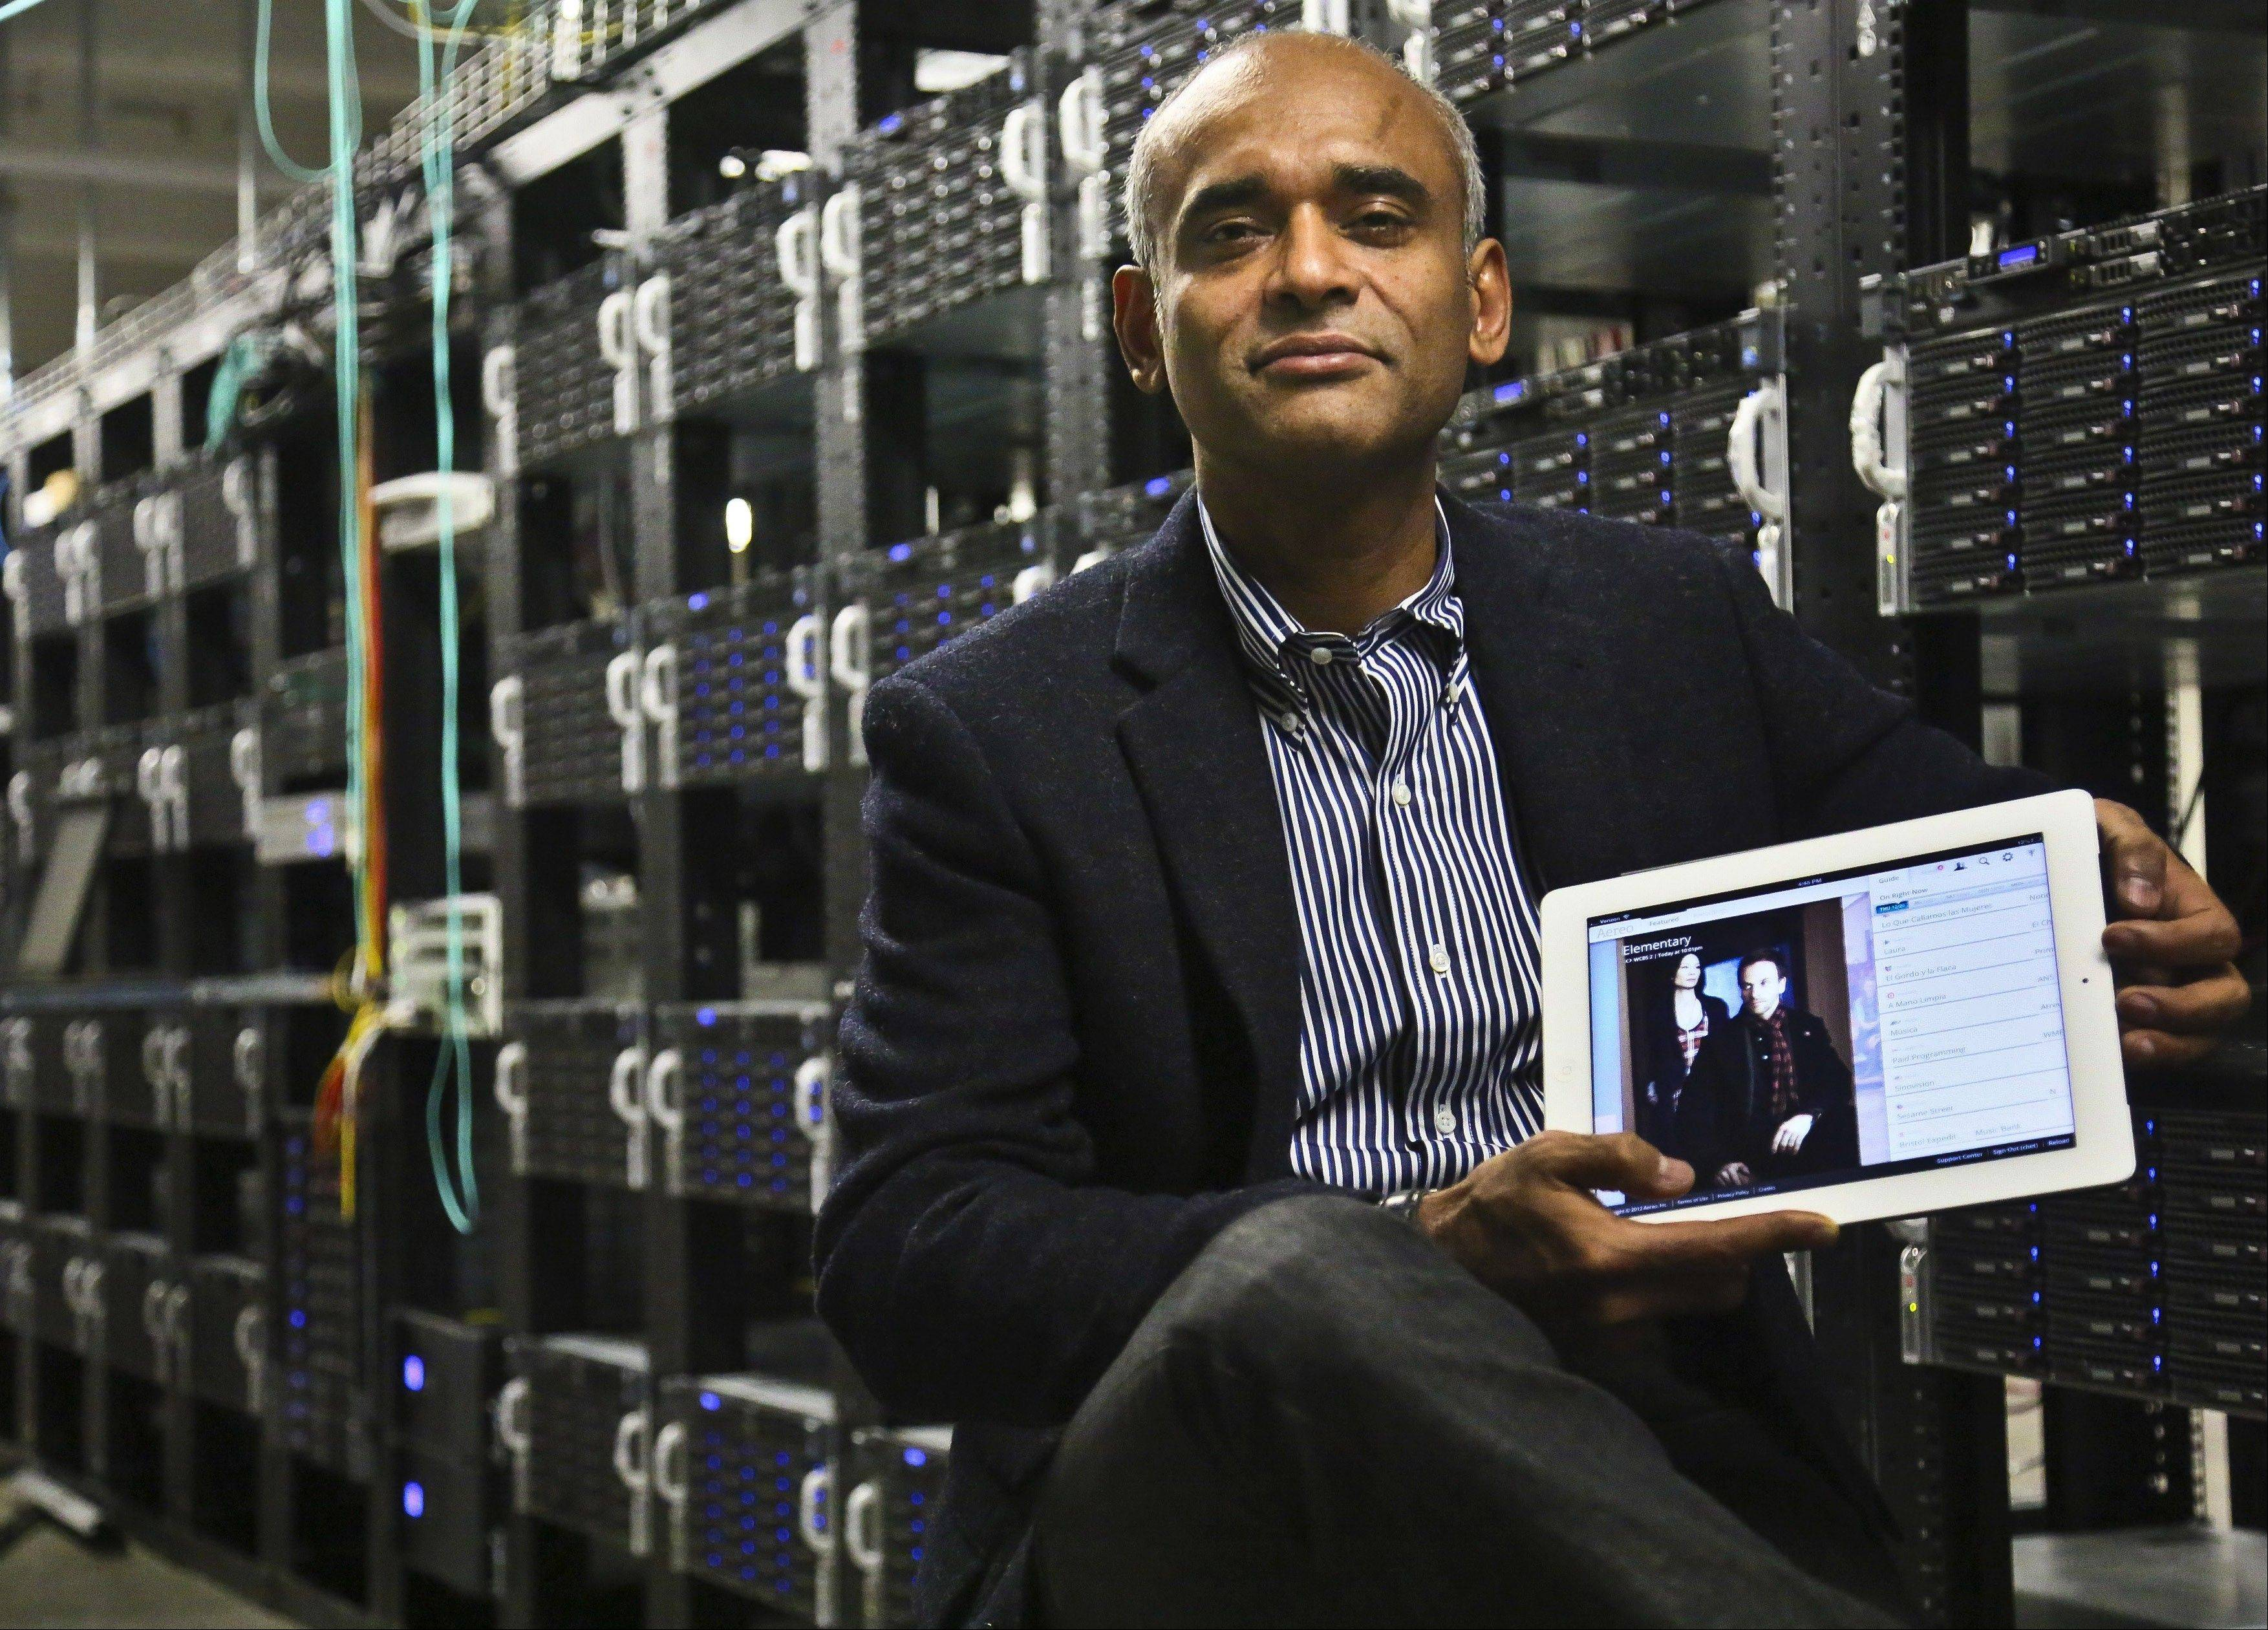 Chet Kanojia, founder and CEO of Aereo, Inc., shows a tablet displaying his company's technology, in New York. Aereo is one of several startups created to deliver traditional media over the Internet without licensing agreements. Past efforts have typically been rejected by courts as copyright violations. In Aereoís case, the judge accepted the companyís legal reasoning, but with reluctance.